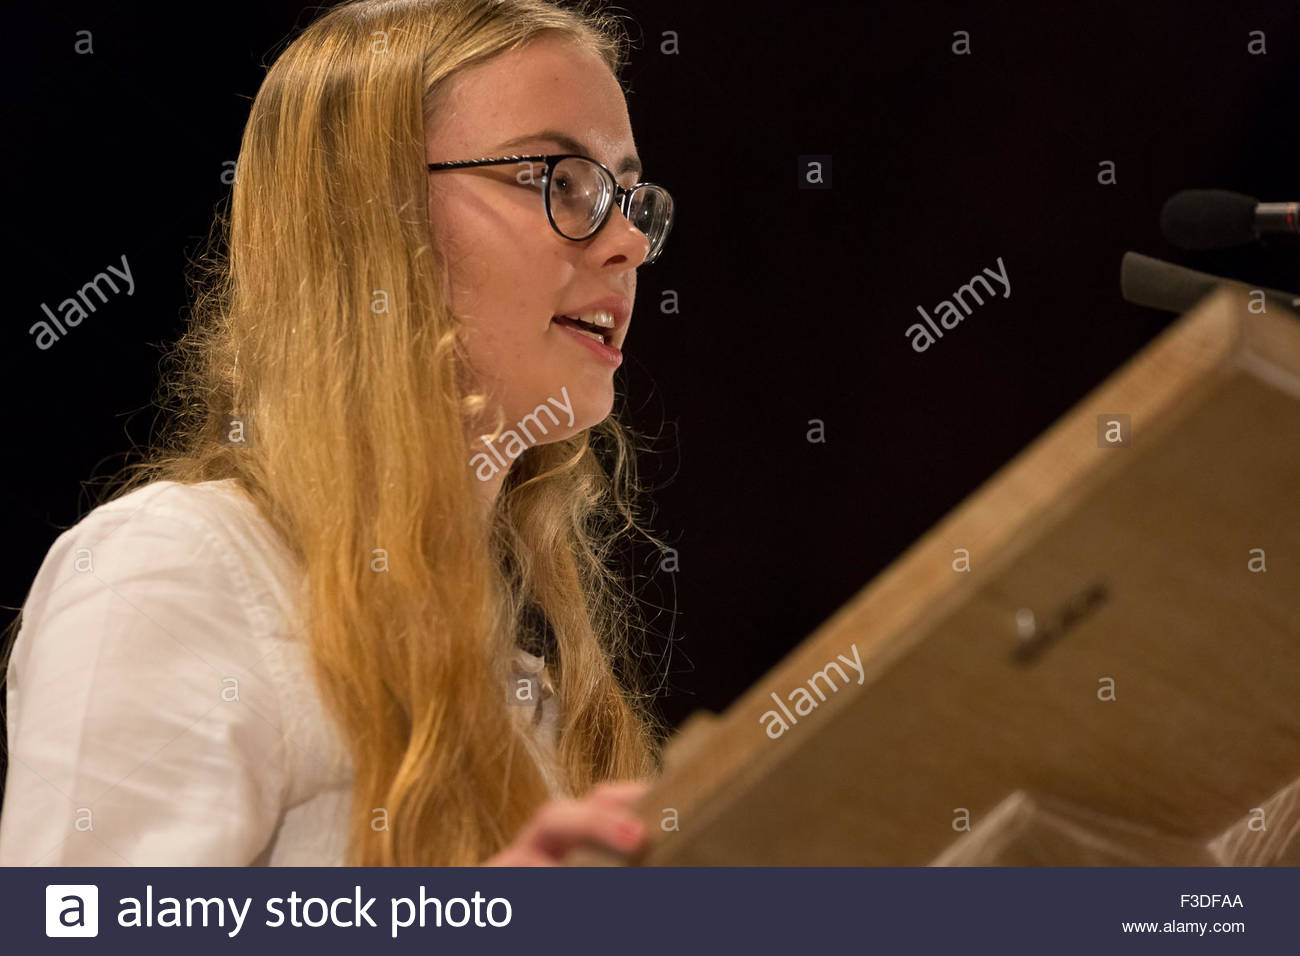 Manchester, UK. 5th October, 2015. Manchester, 5 ocotber 2915. Abby tomlinson at People's post meeting in Manchester - Stock Image